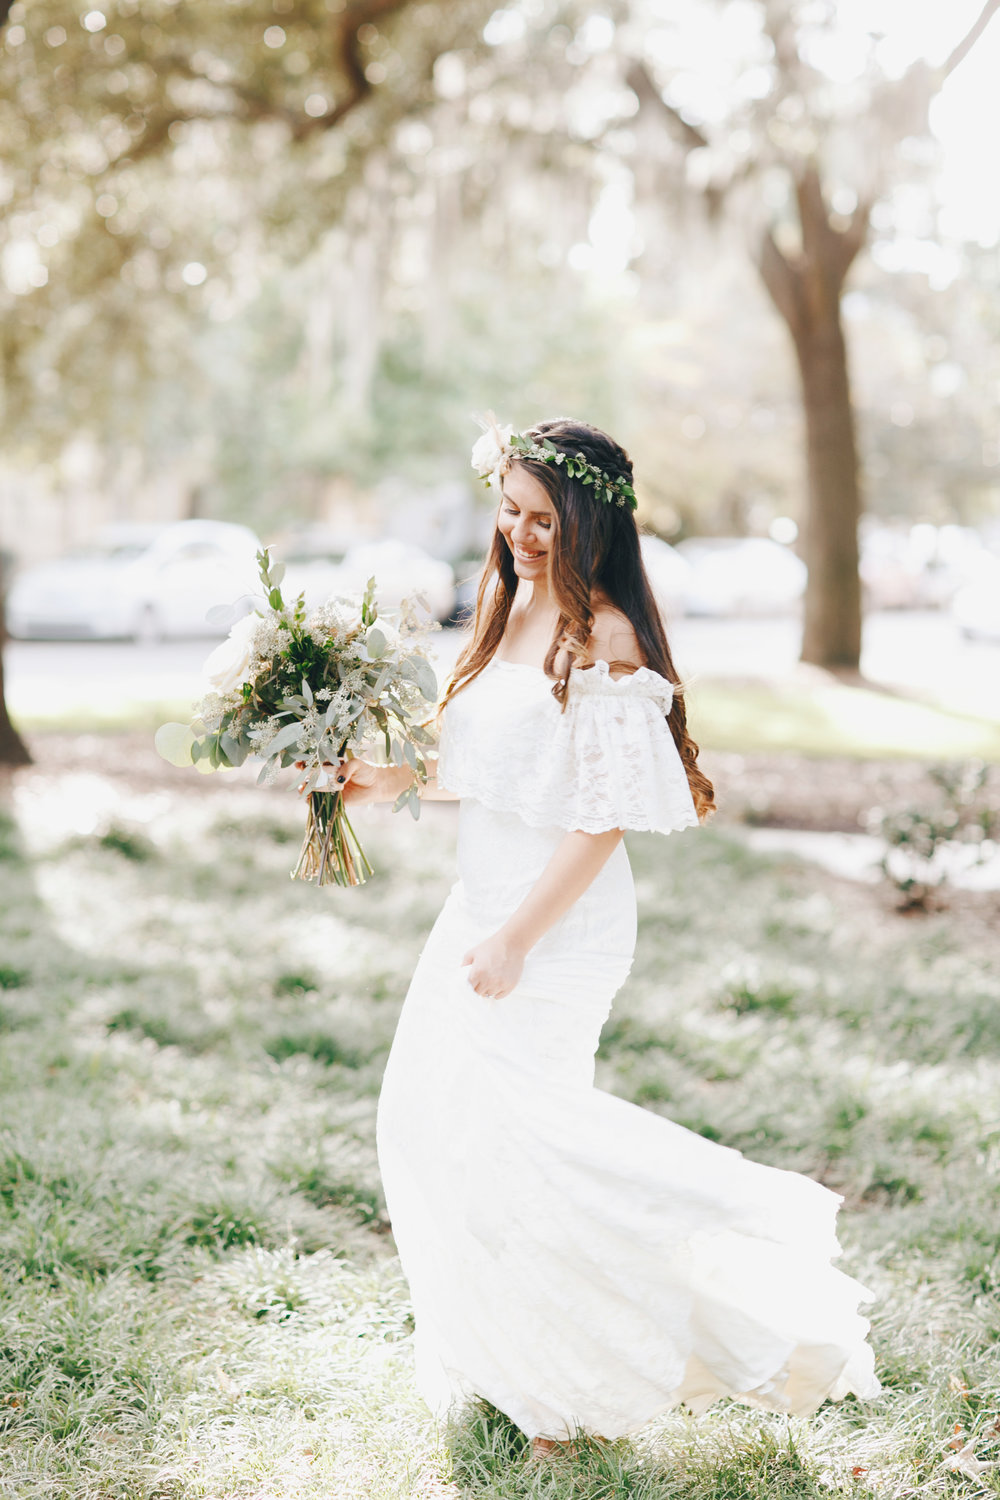 darling-juliet-photography-ivory-and-beau-bridal-boutique-savannah-wedding-dresses-savannah-bridal-gowns-daughters-of-simone-winnie-savannah-florist-boho-wedding-savannah-boho-wedding-roundhouse-railroad-musuem-wedding-18.jpg